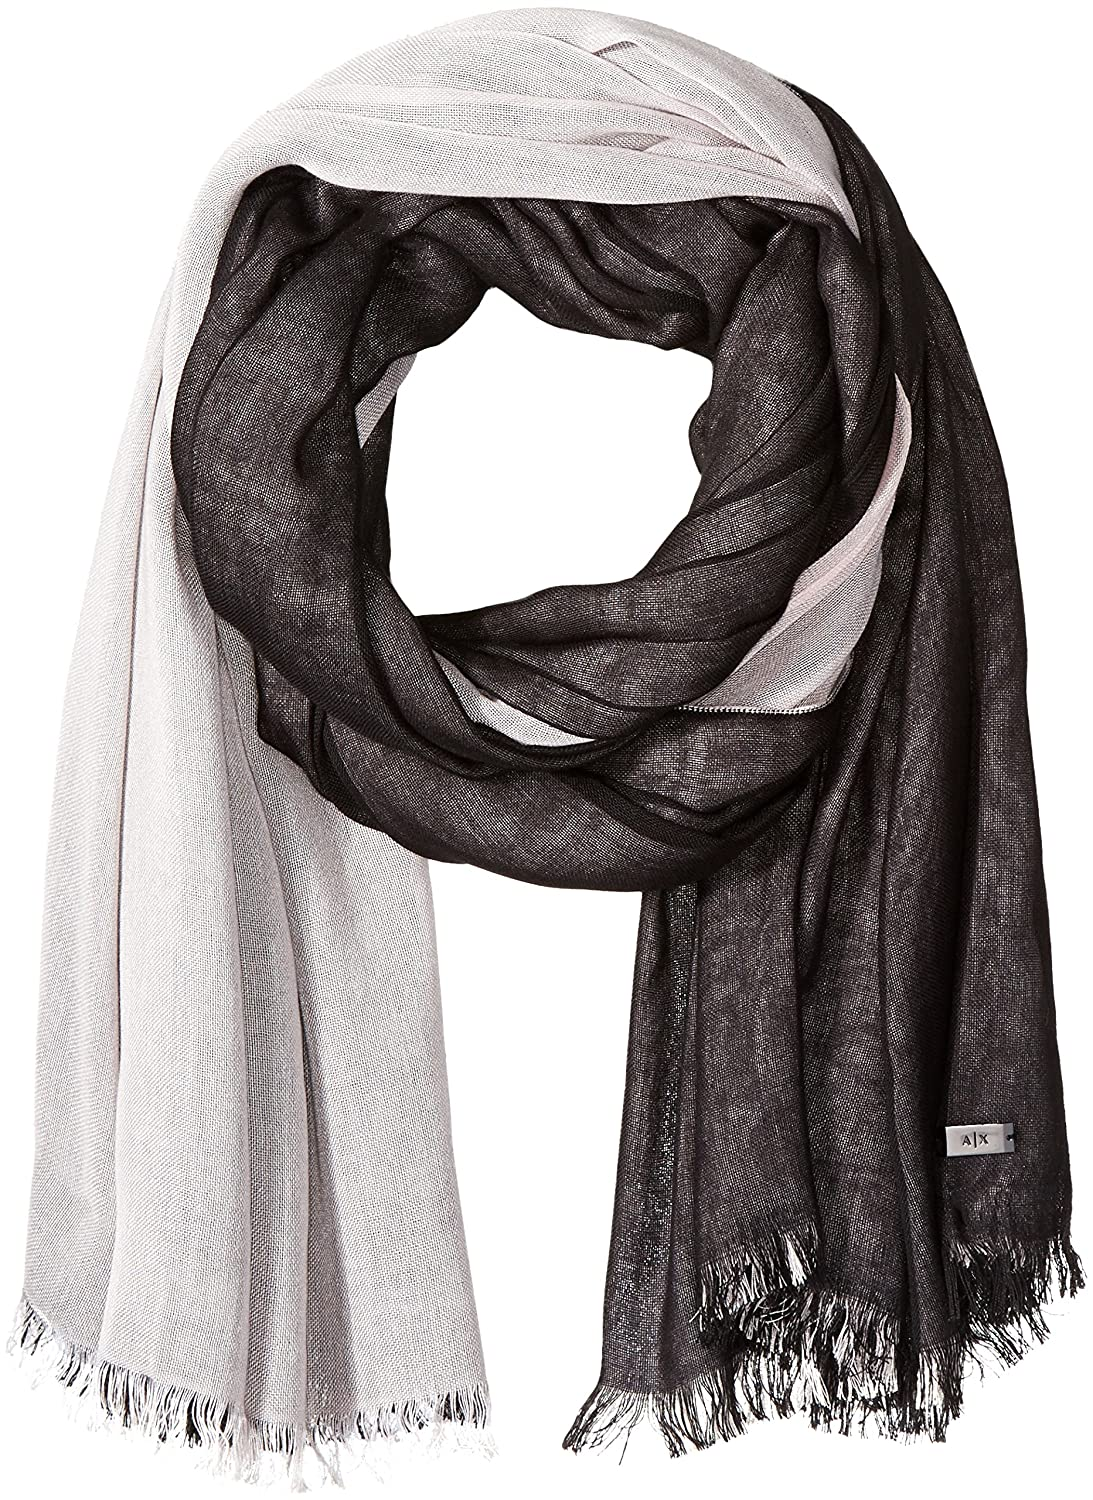 A|X Armani Exchange Women's Double Sided Scarf